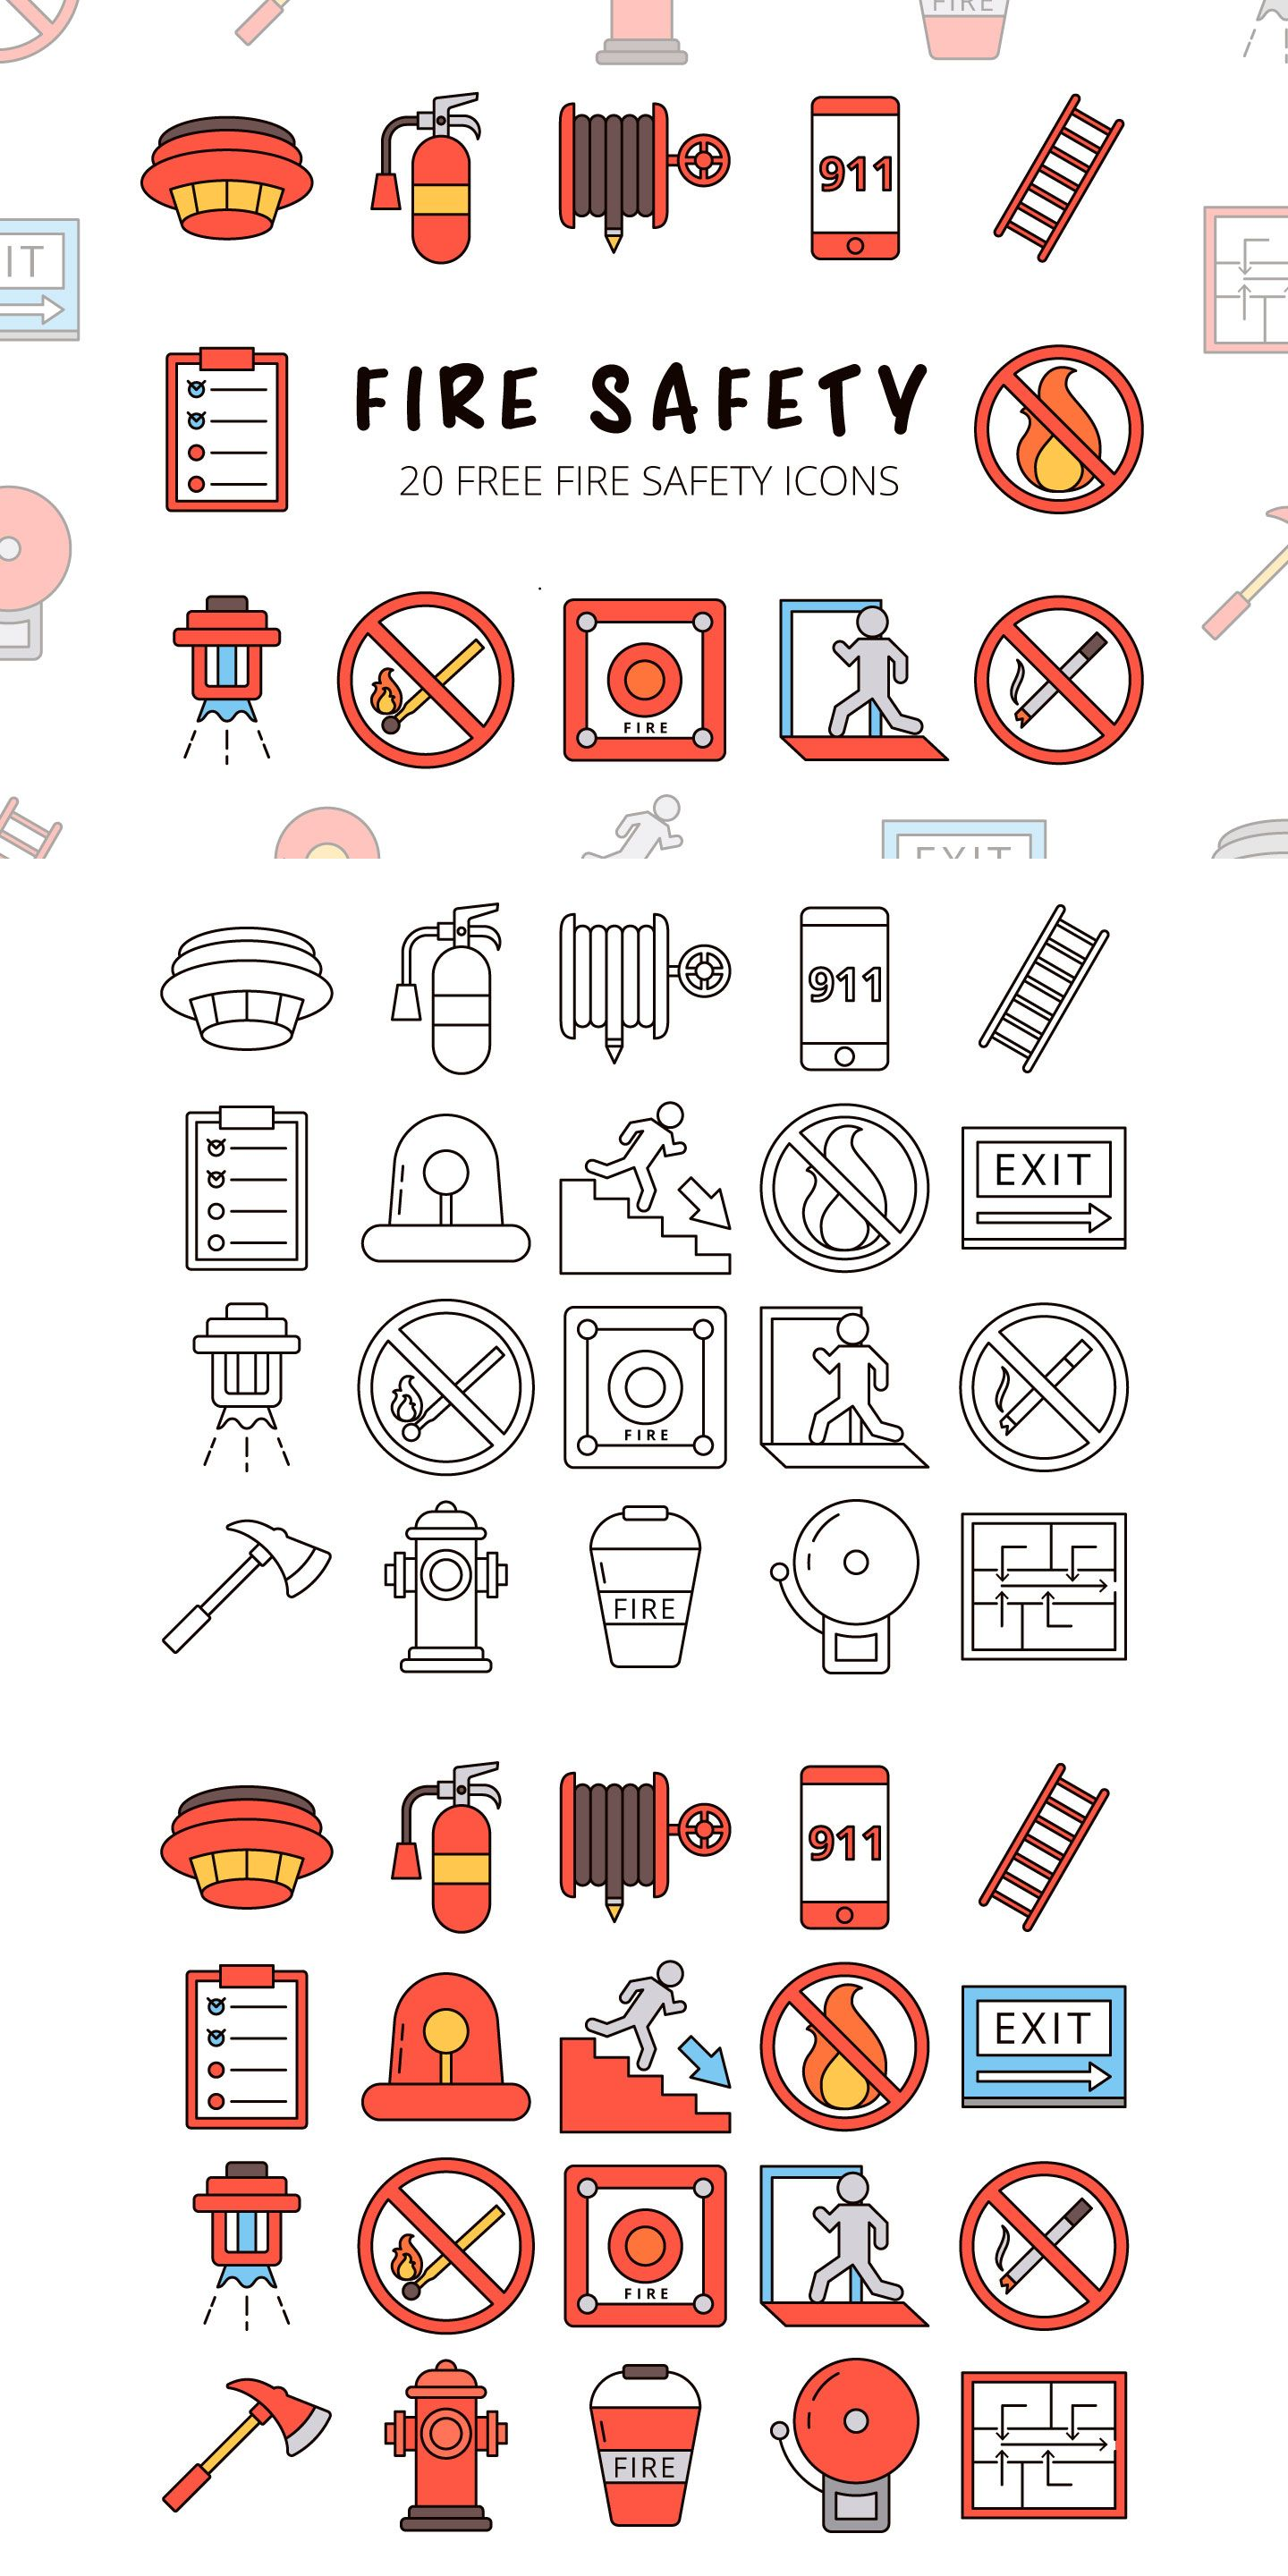 Fire Safety Vector Free Icon Set in 2020 Icon set, Cute